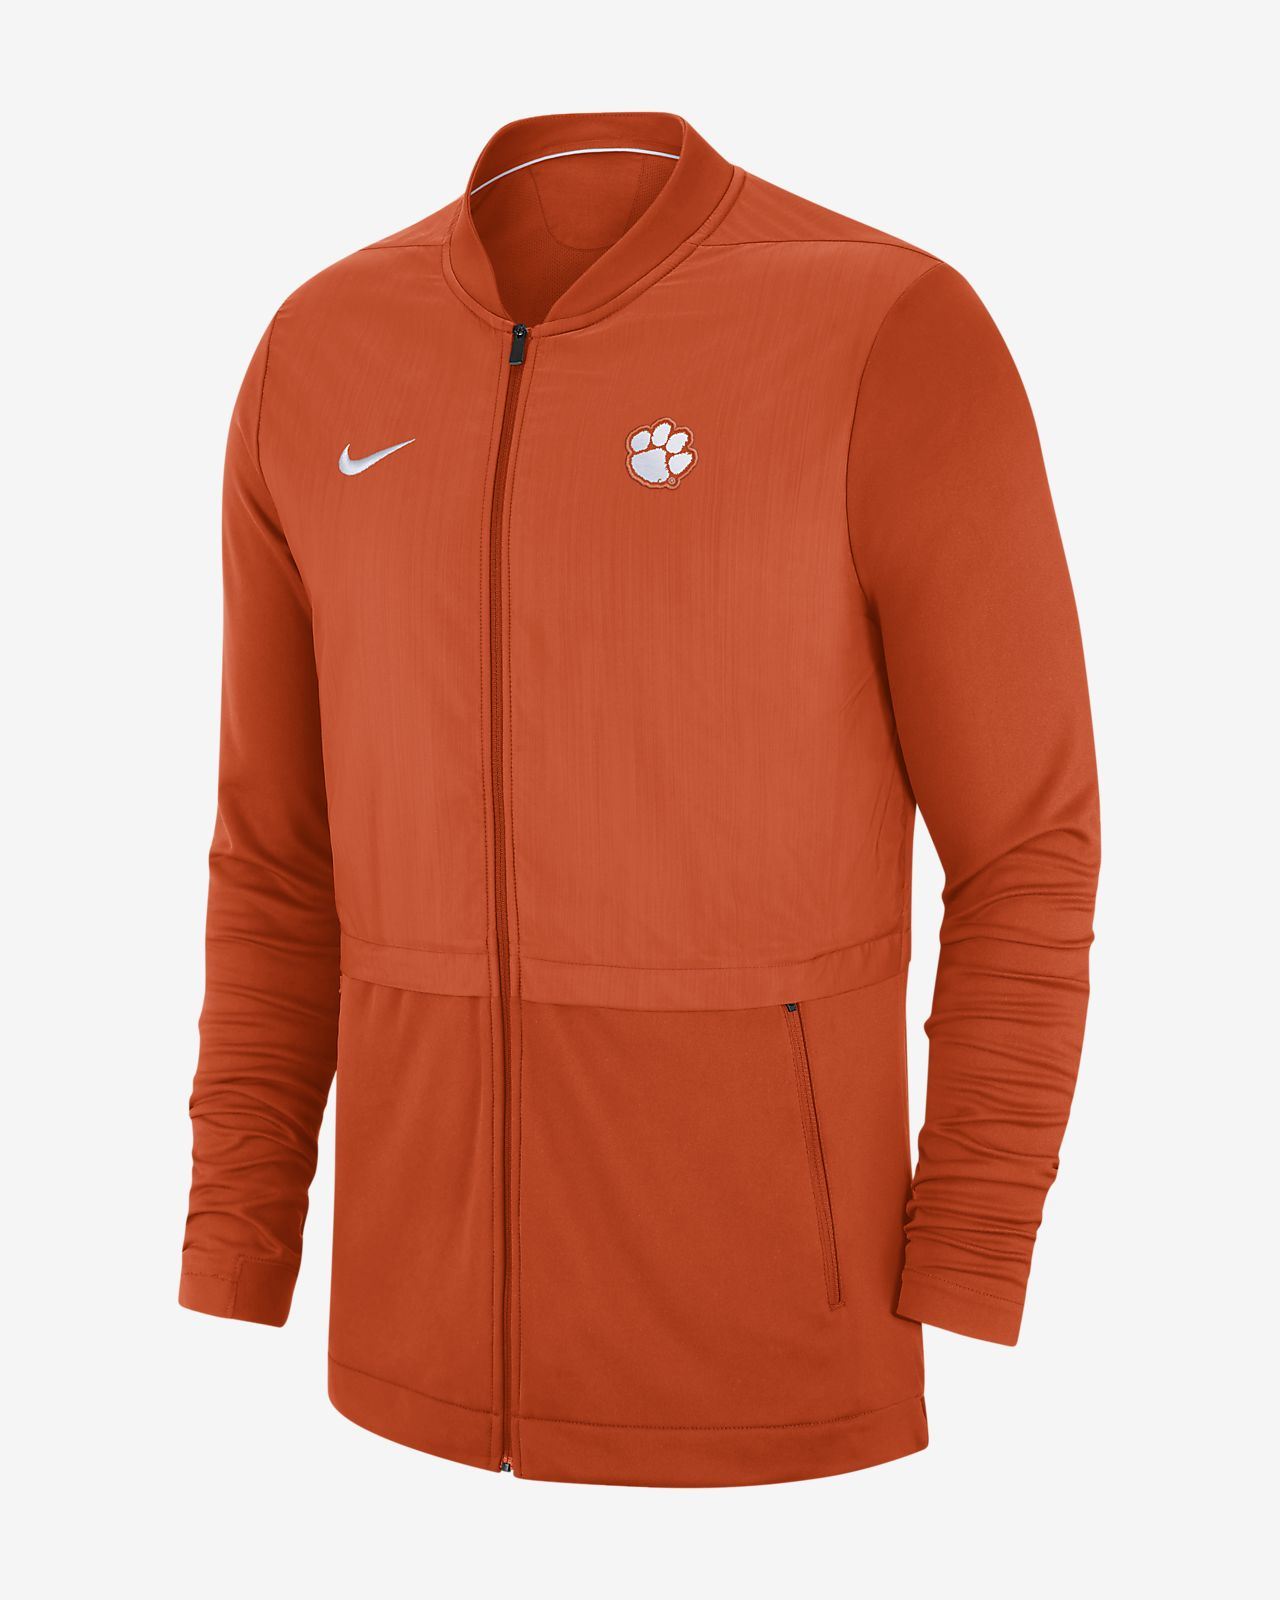 Nike College Dri-FIT Elite Hybrid (Clemson) Men's Jacket